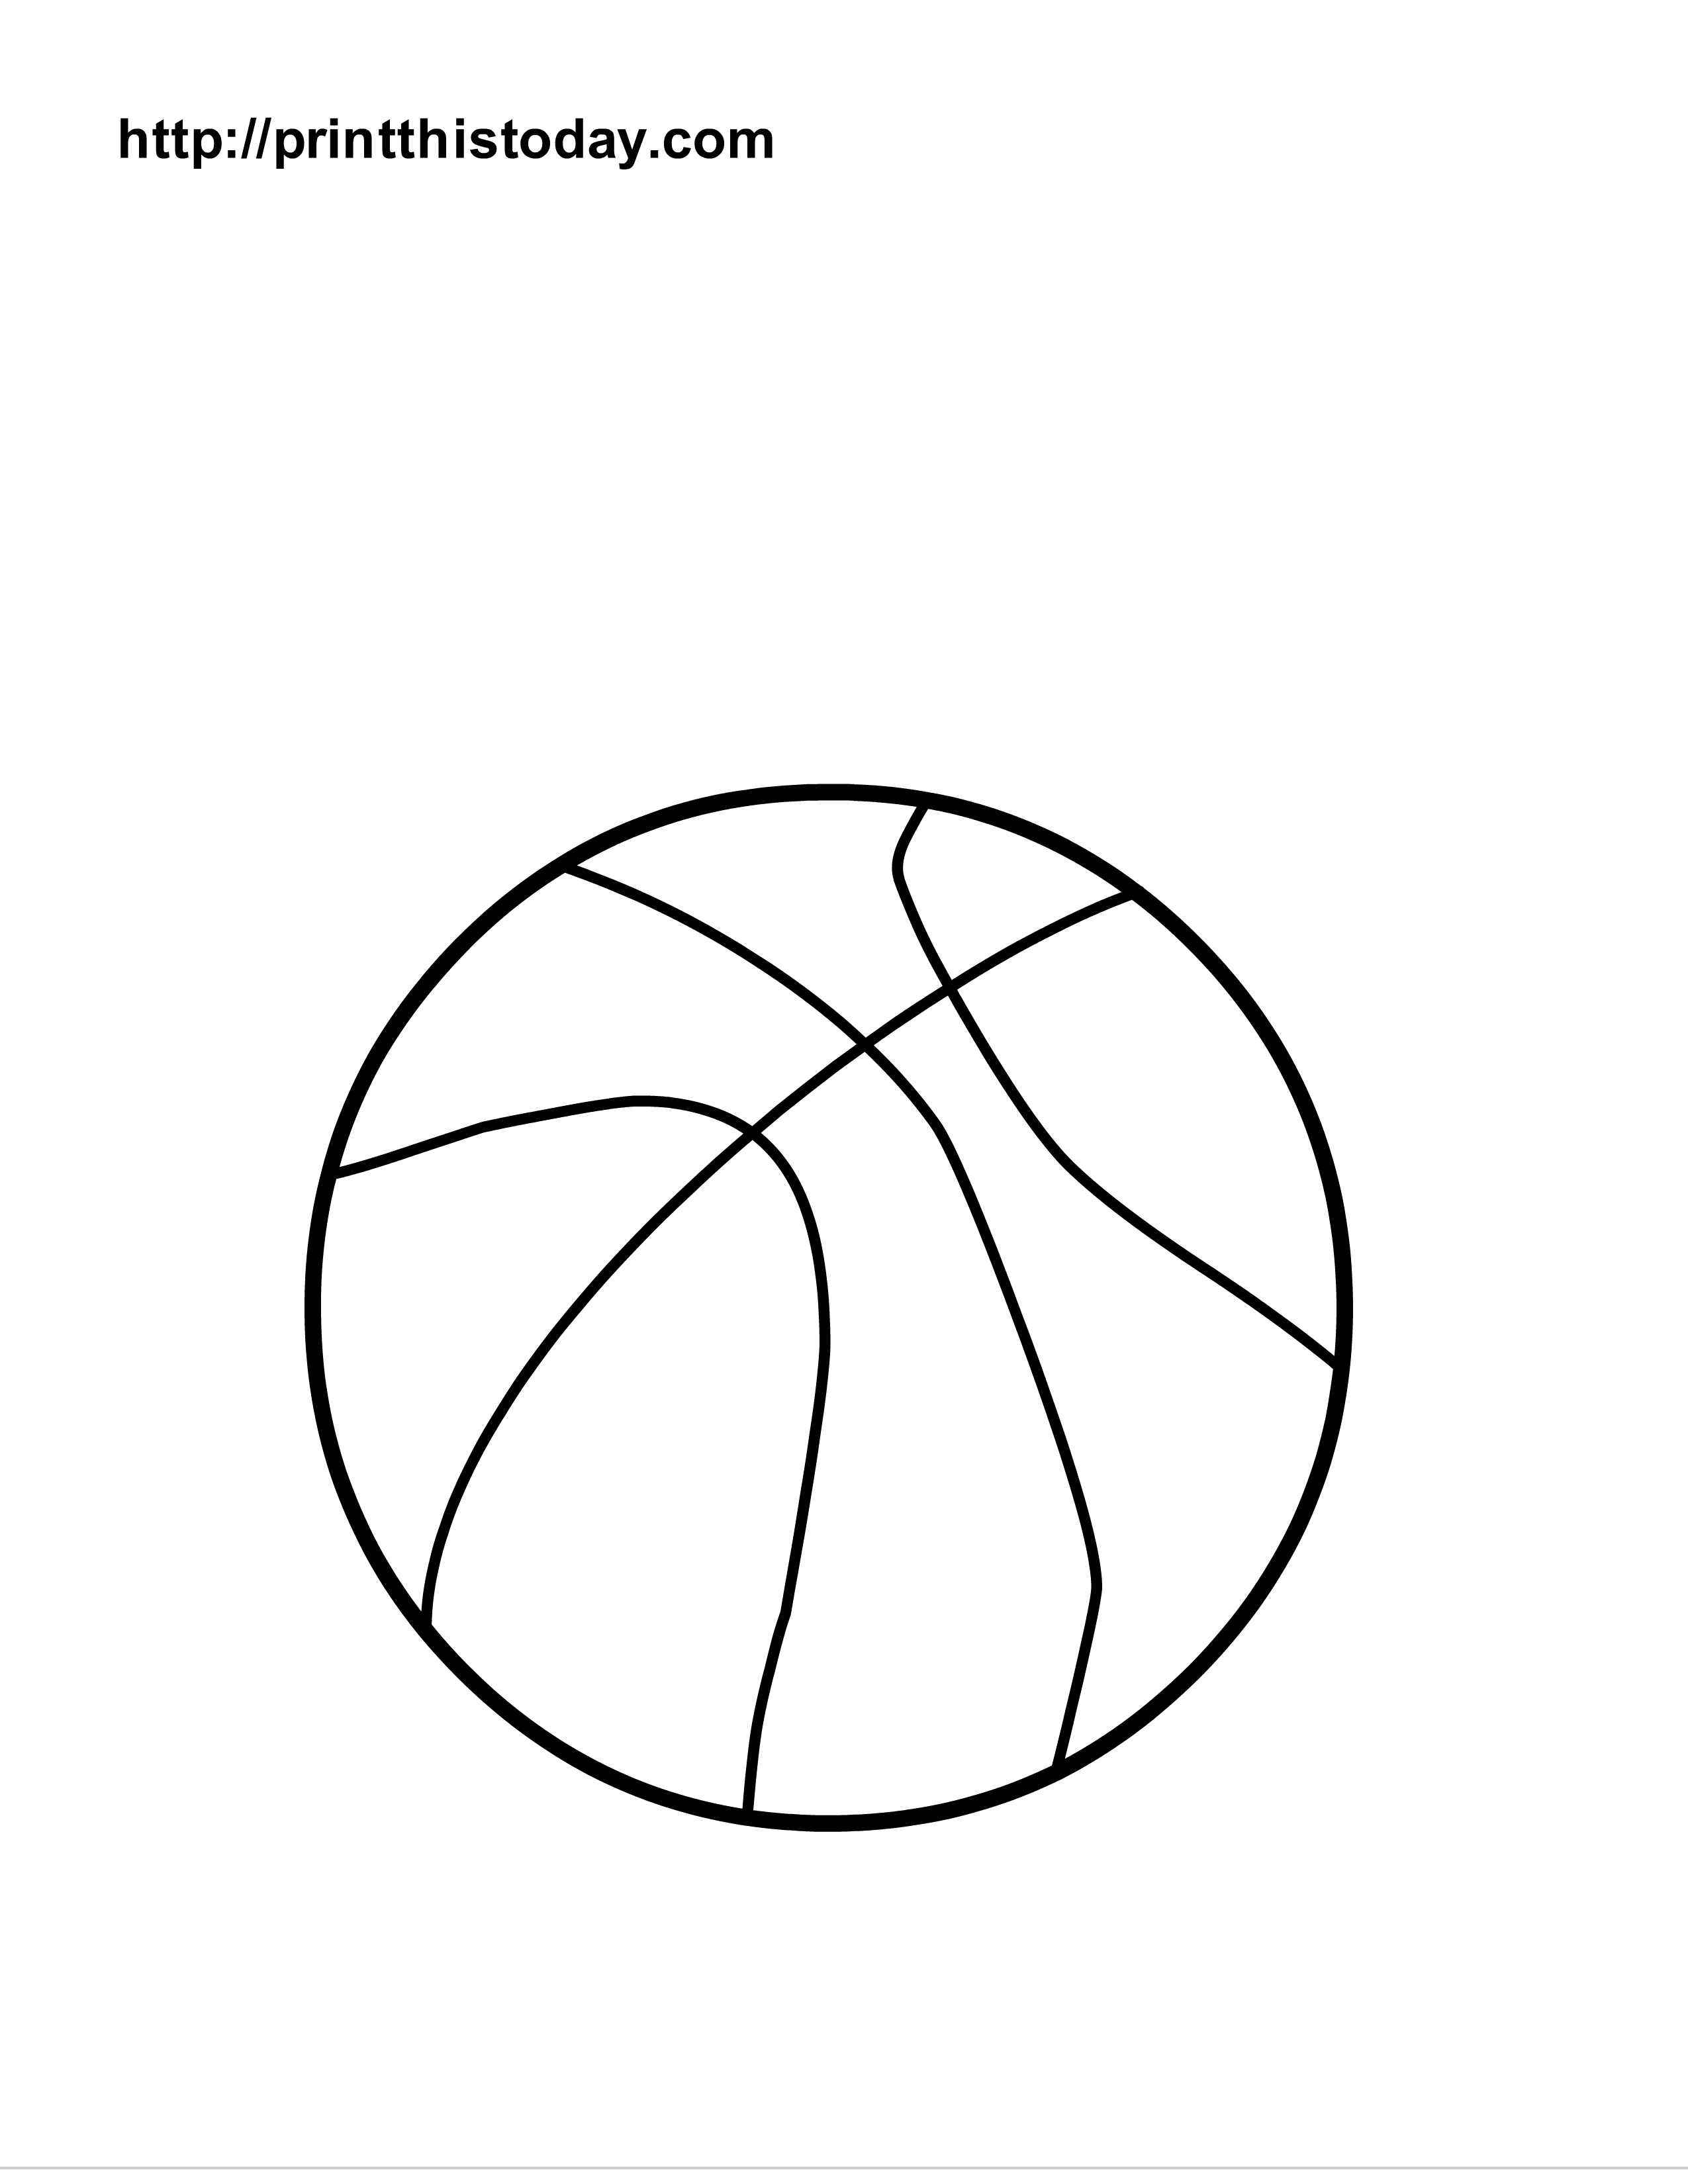 colouring pages of ball ball coloring pages coloring pages to download and print of ball pages colouring